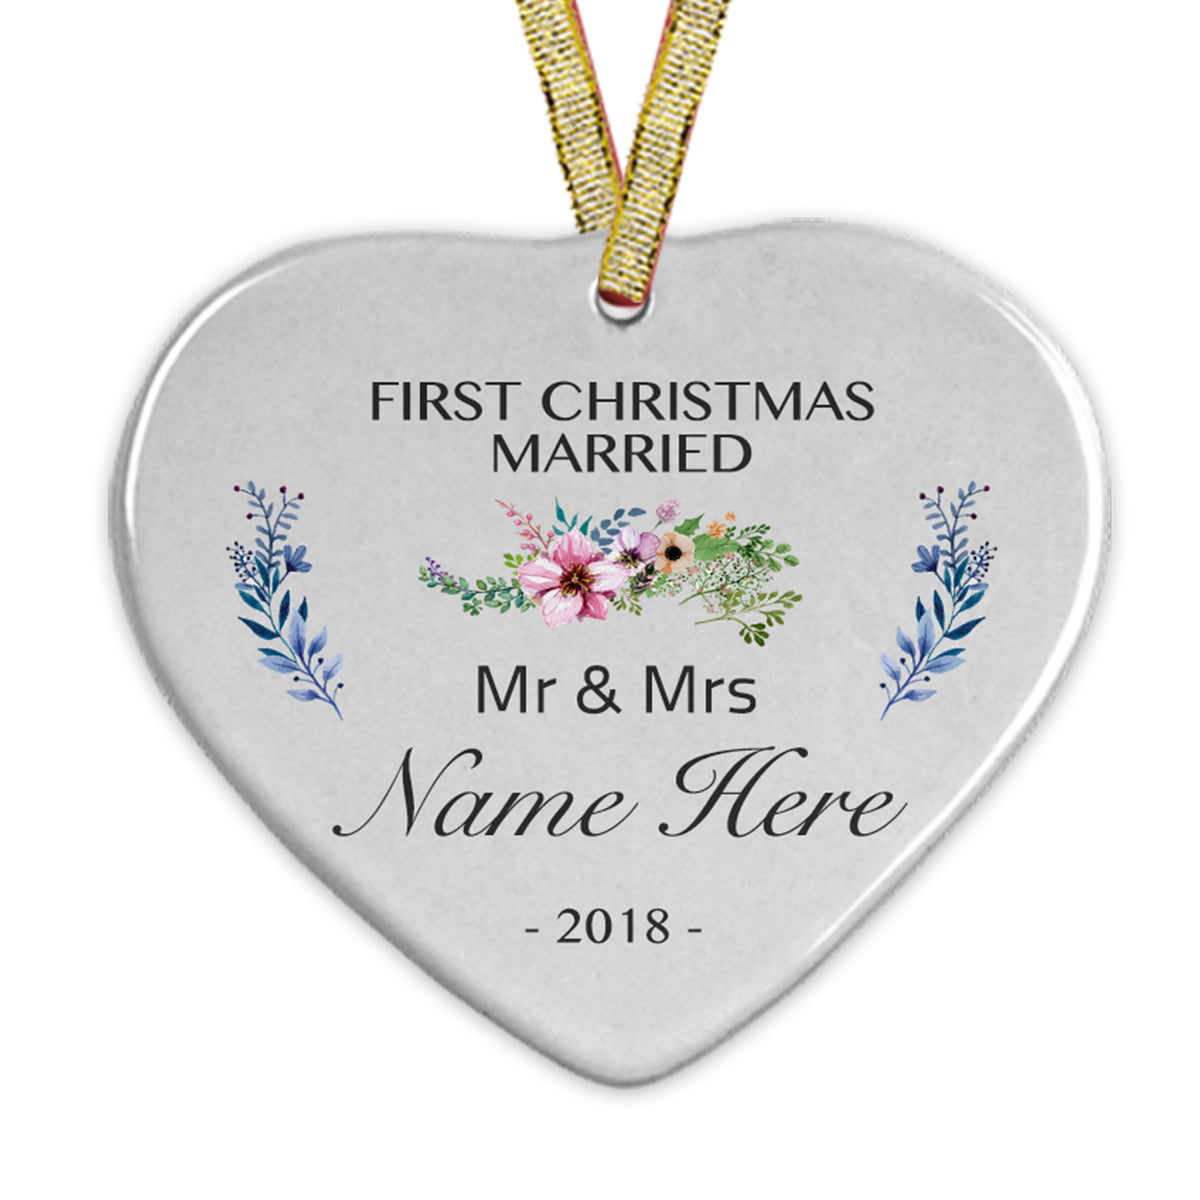 Heart Ceramic Ornaments Personalized Your Family's Name